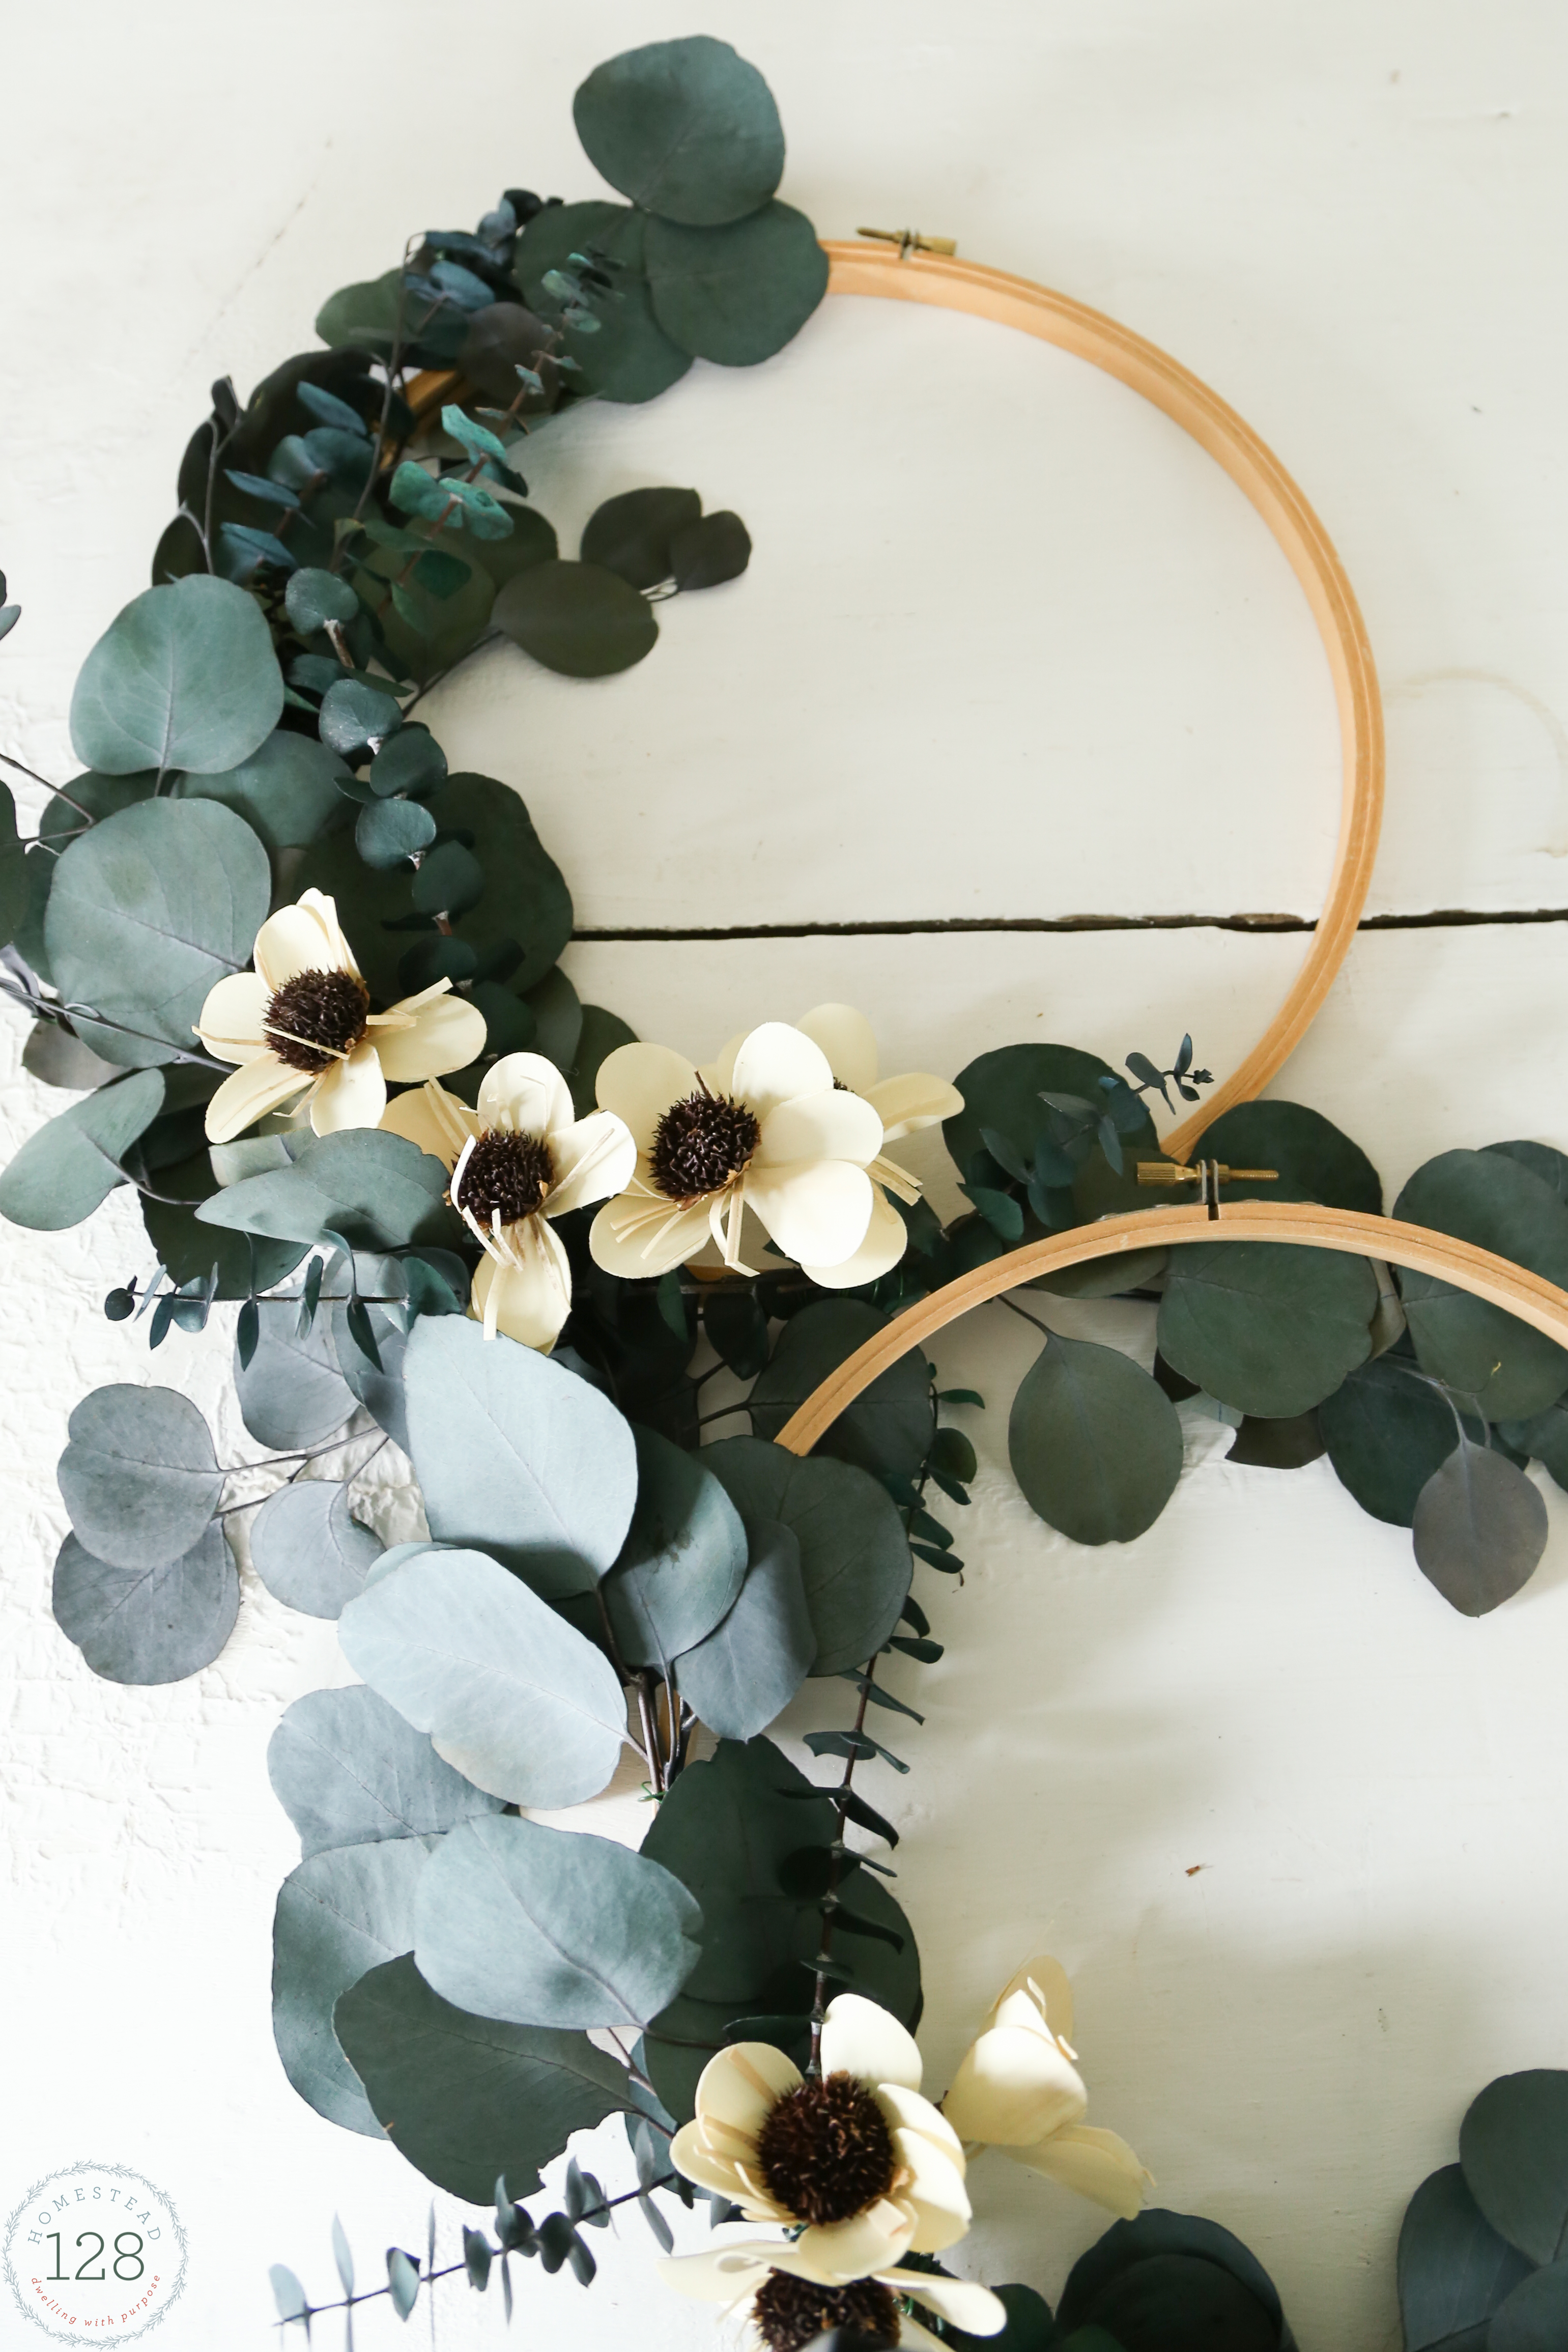 Create a wreath for the season with an embroidery hoop and dried natural stems.